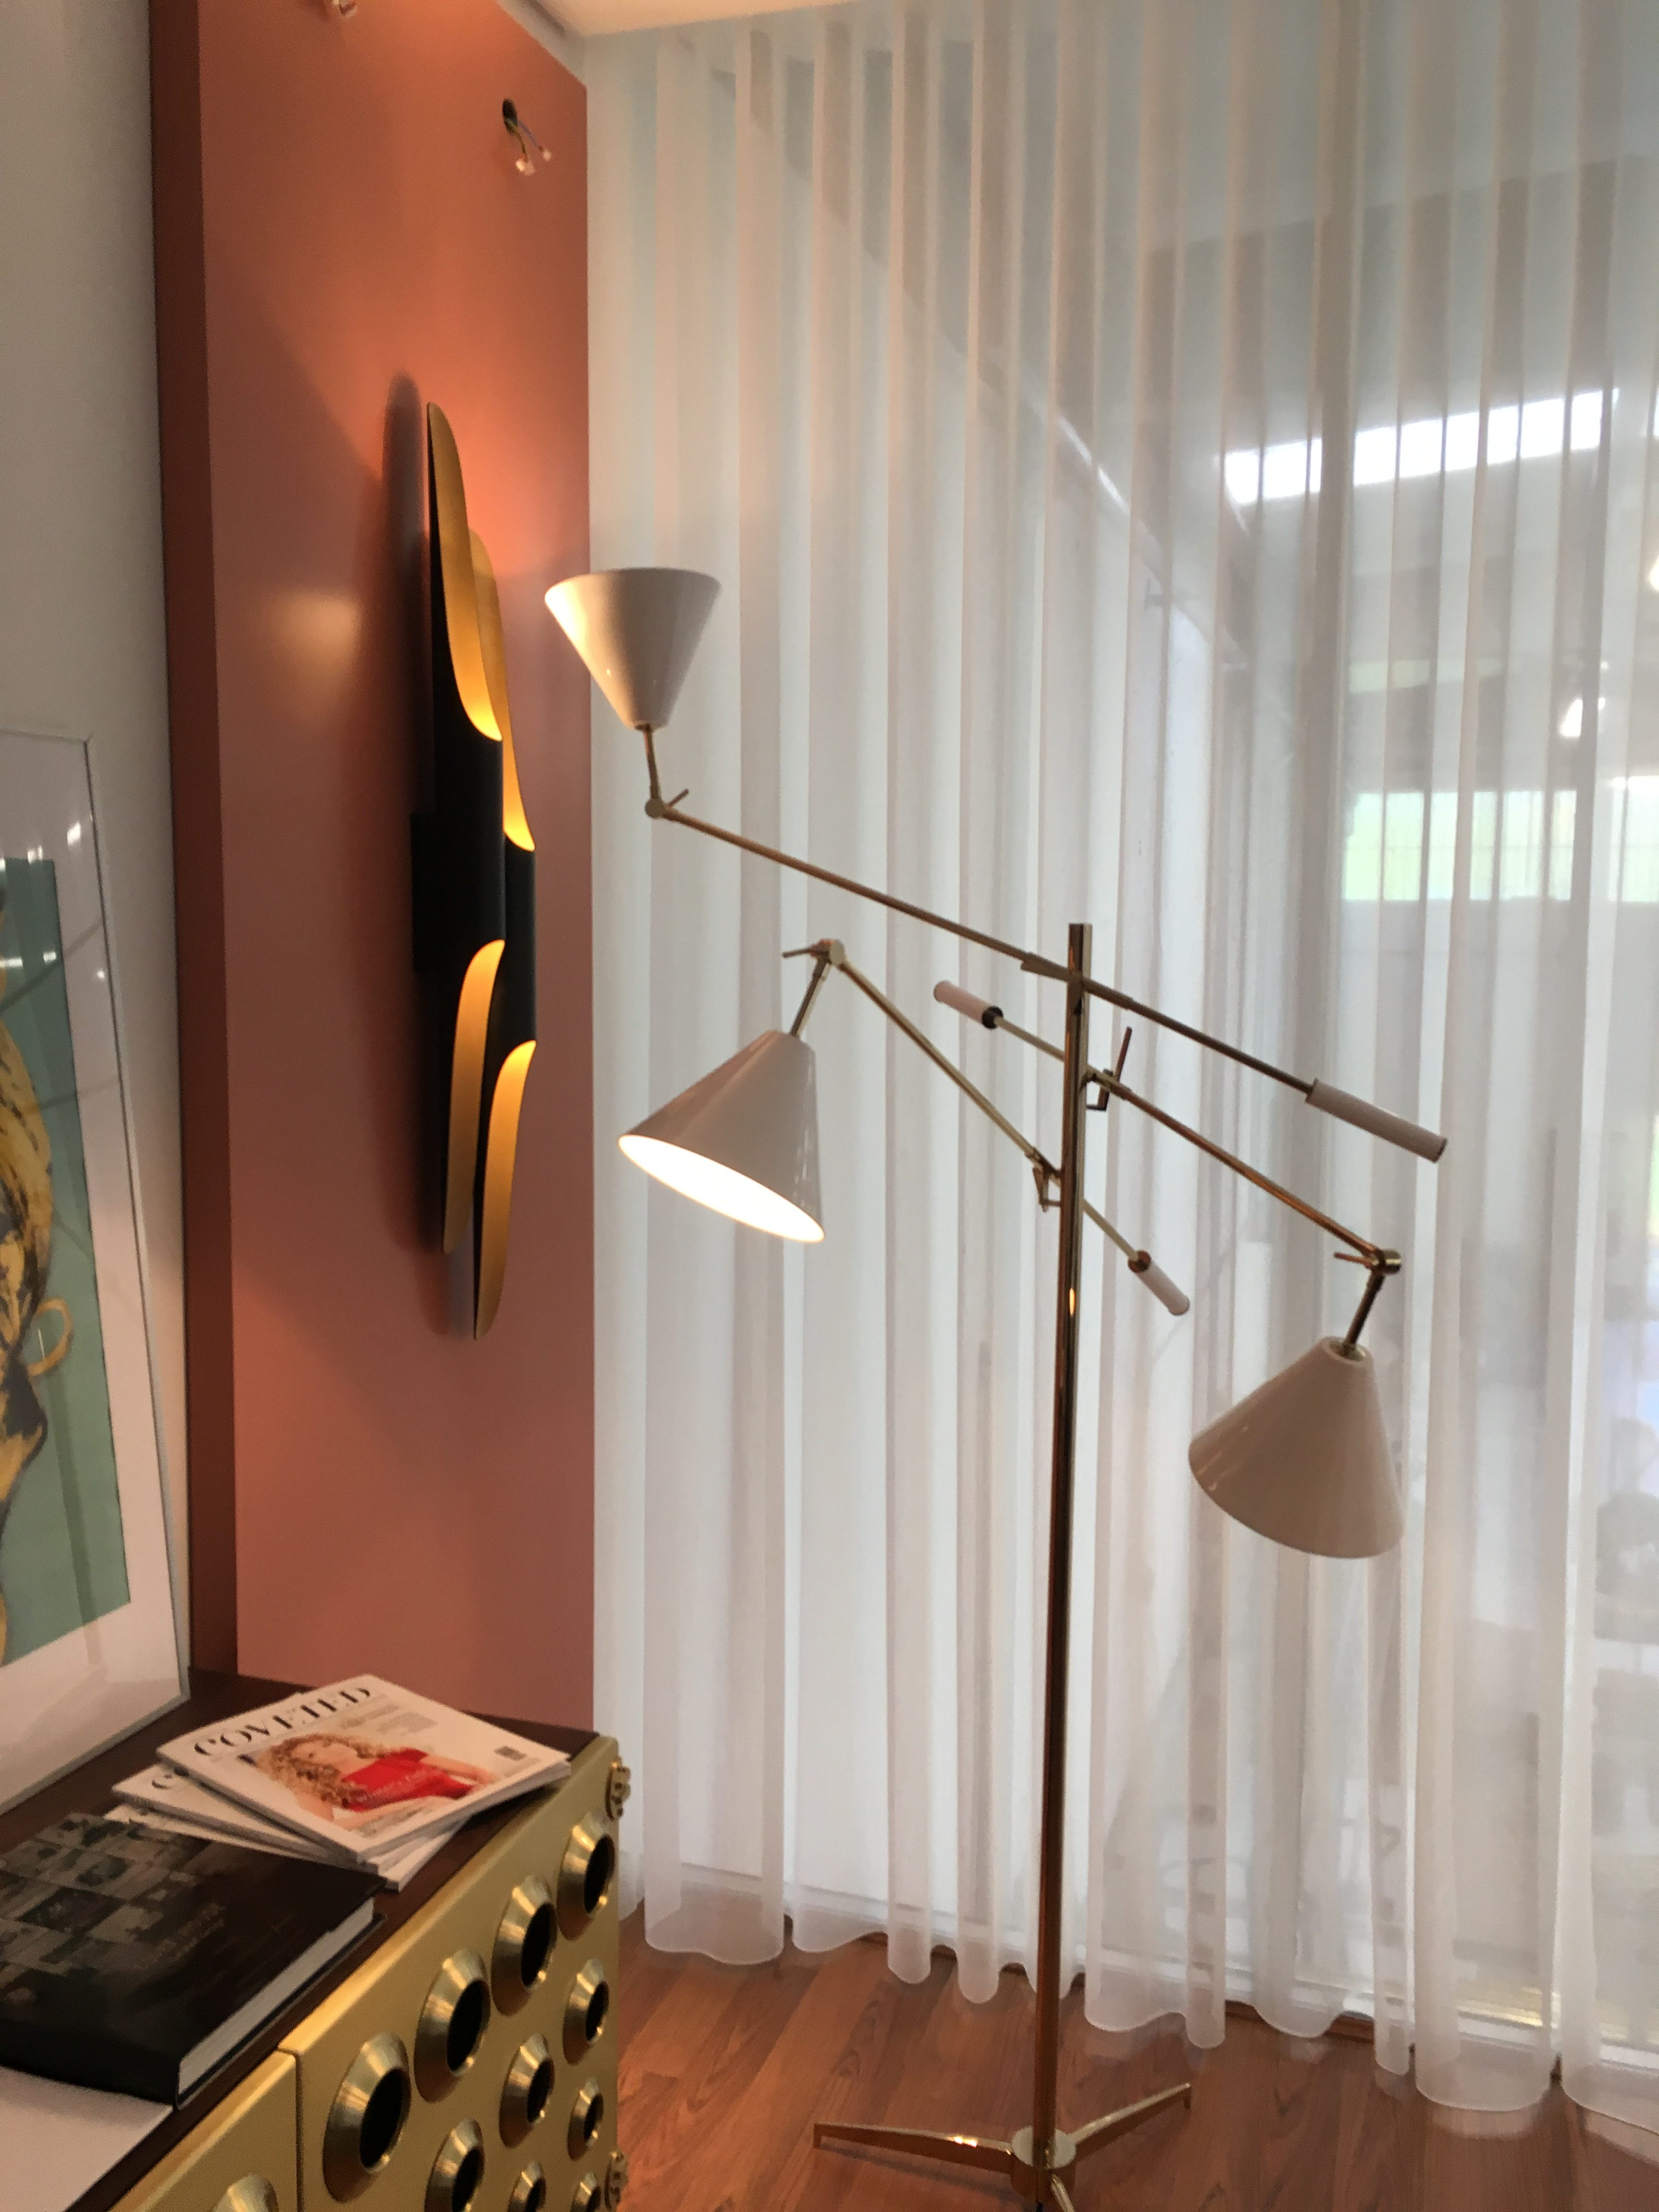 handmade floor lamps Handmade Floor Lamps Is What's Hot On Pinterest! Interior Design Furniture Pieces From Around the Globe5 1 e1553876574169